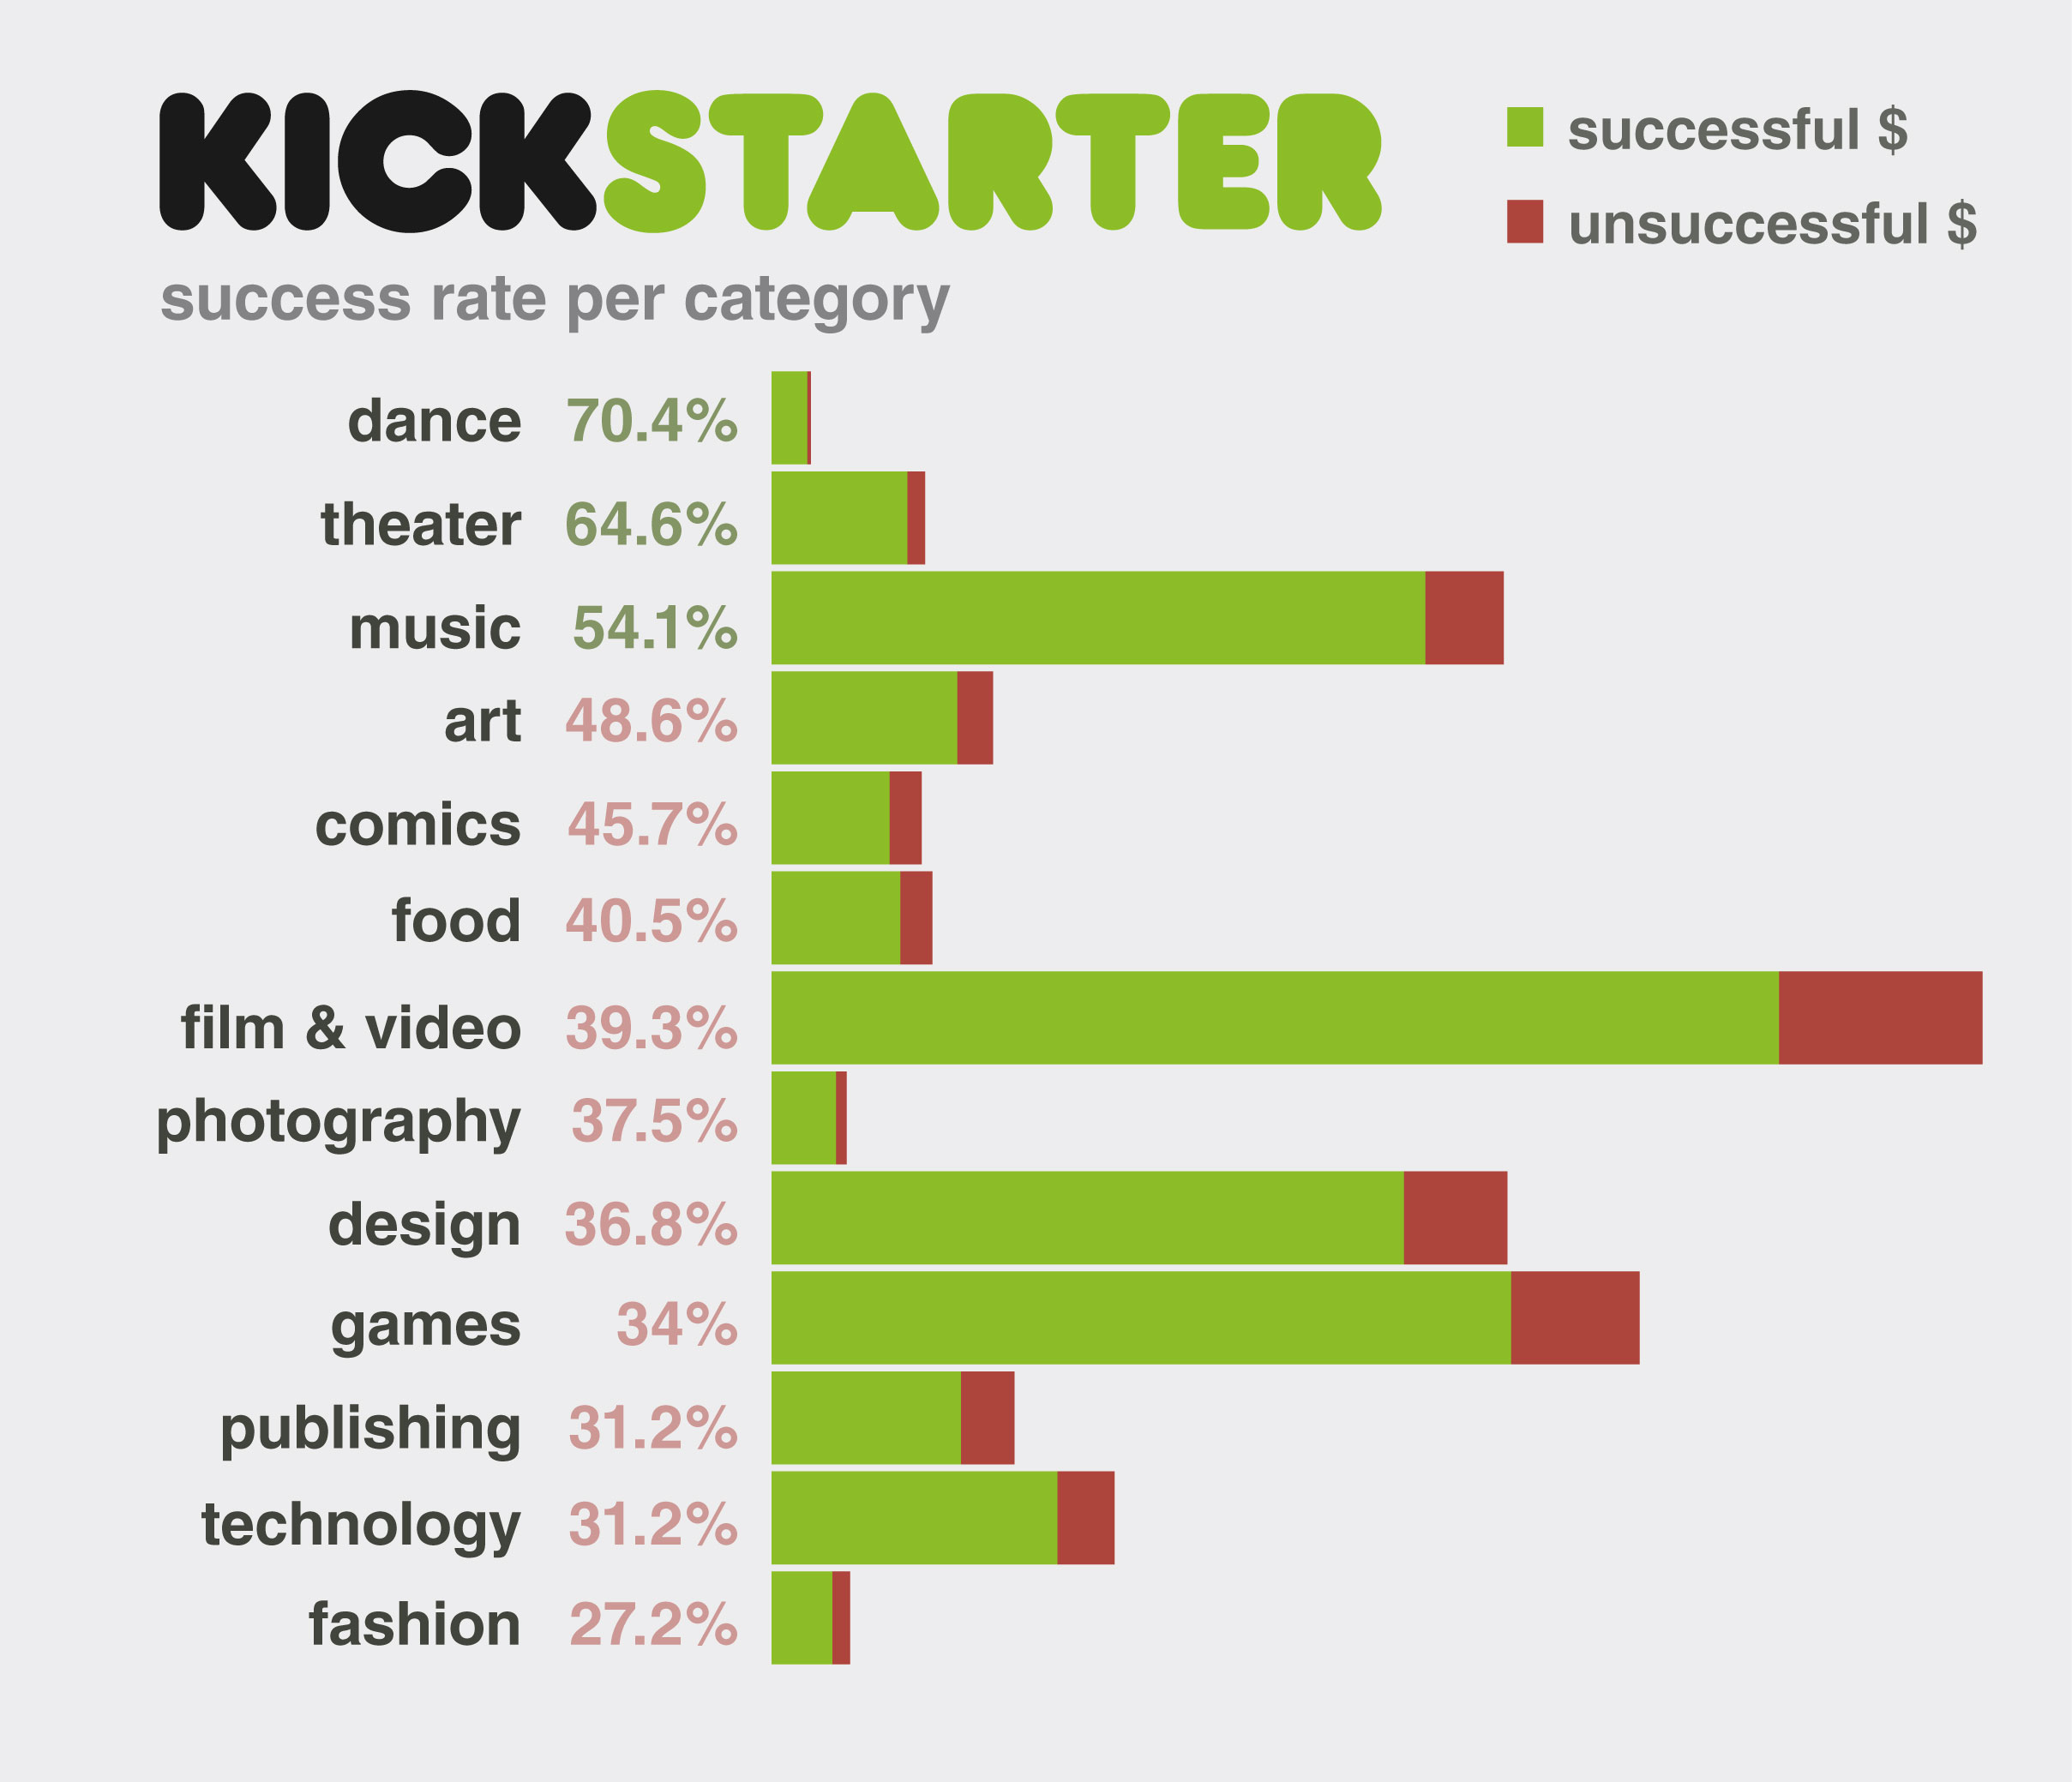 kickstarter projects 2015 is shaping up as the greatest ever for crowdfunding, with three 2015 projects already making it to the list of 15 most-funded crowdfunding projects on kicstarter and indeigogo.